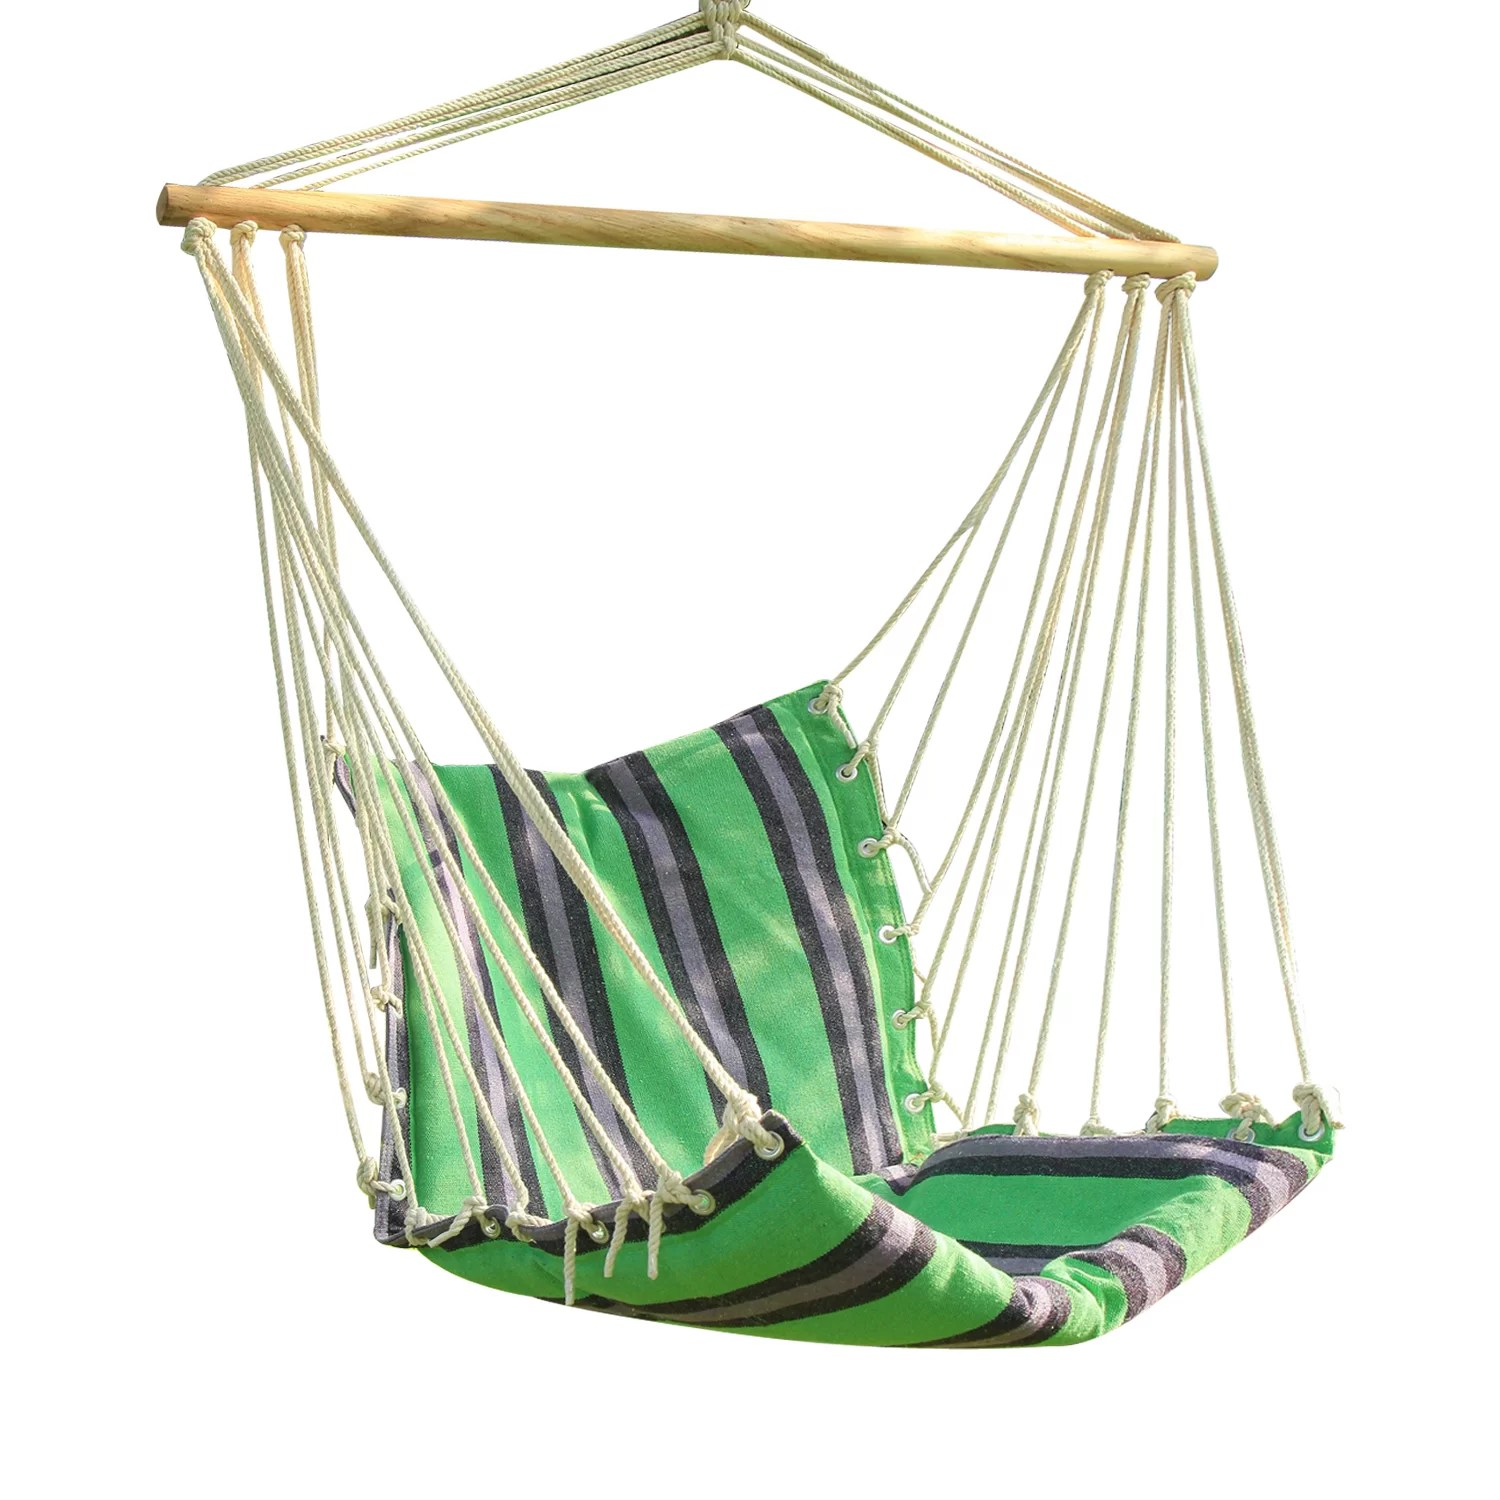 tree hanging hammock chair lawn lounge chairs adecotrading suspended indoor outdoor